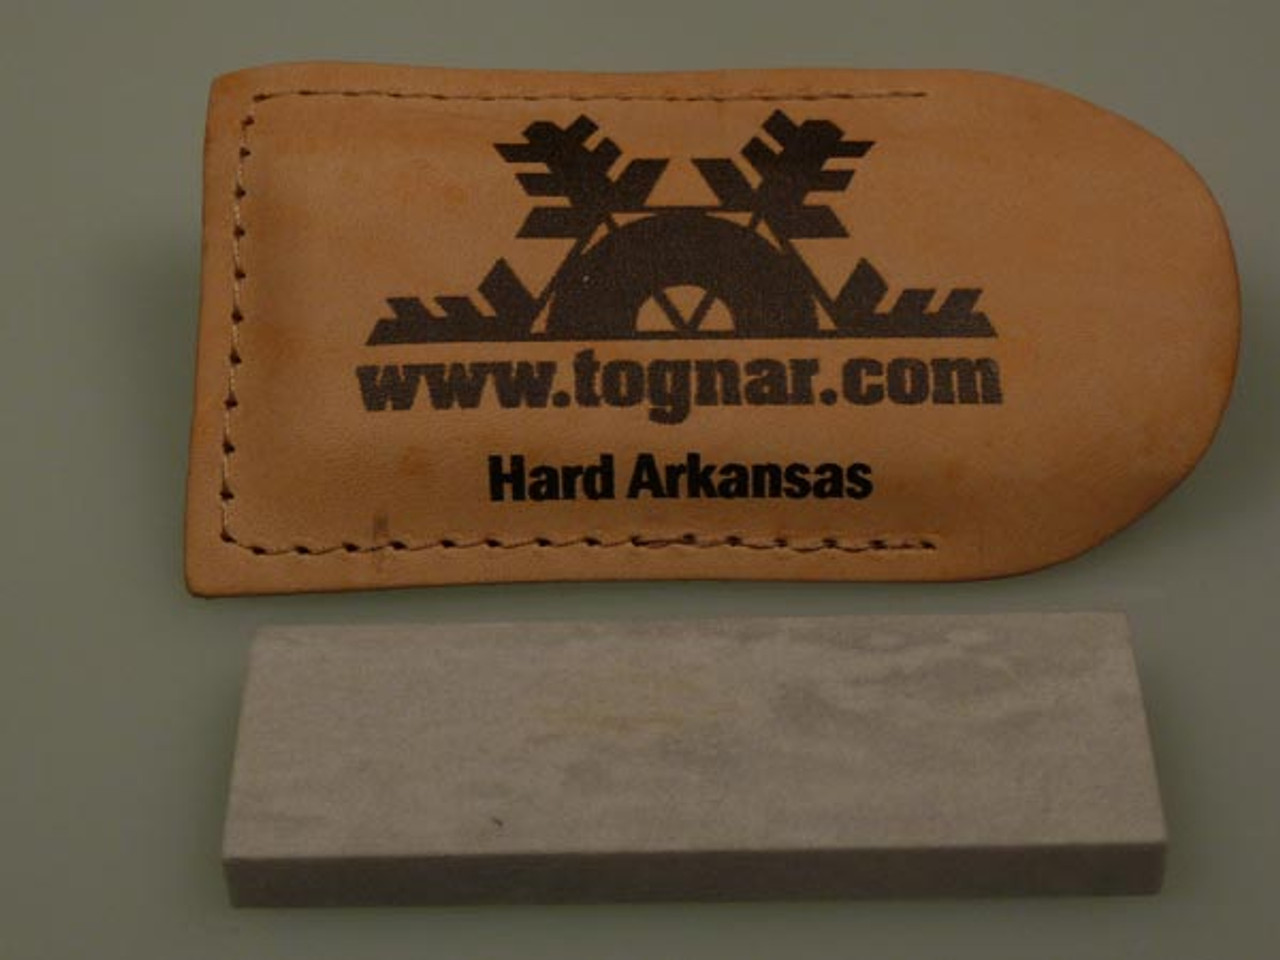 TOGNAR HARD ARKANSAS STONE- 3'